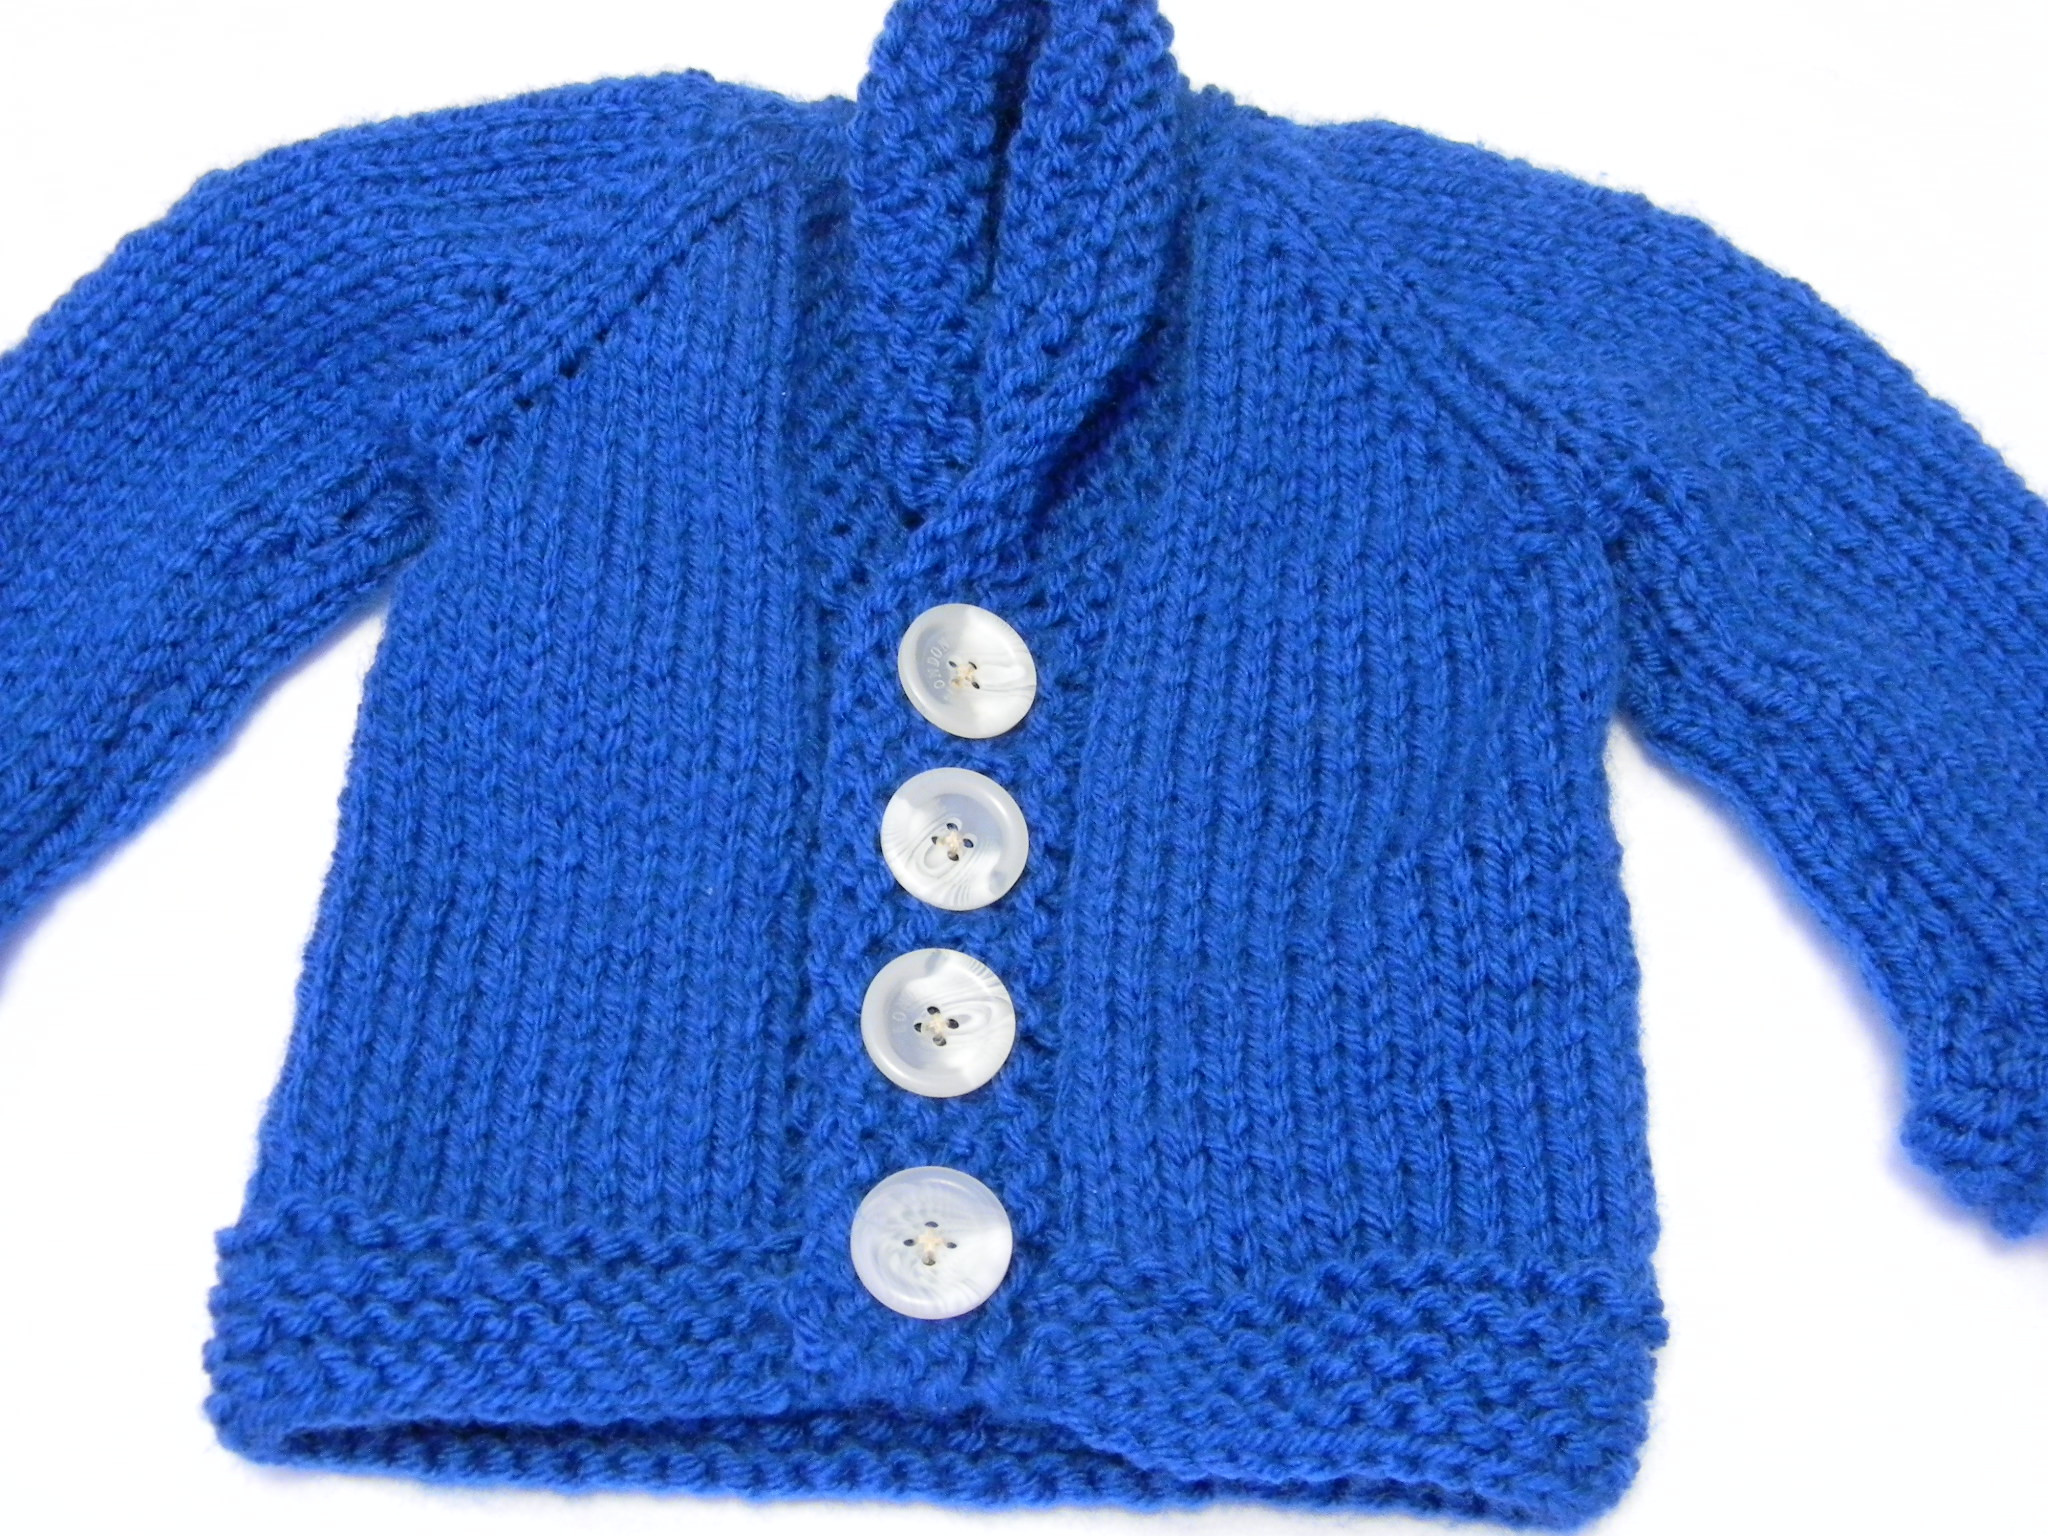 Free Baby Sweater Patterns Awesome Knitting Of New 42 Pics Free Baby Sweater Patterns